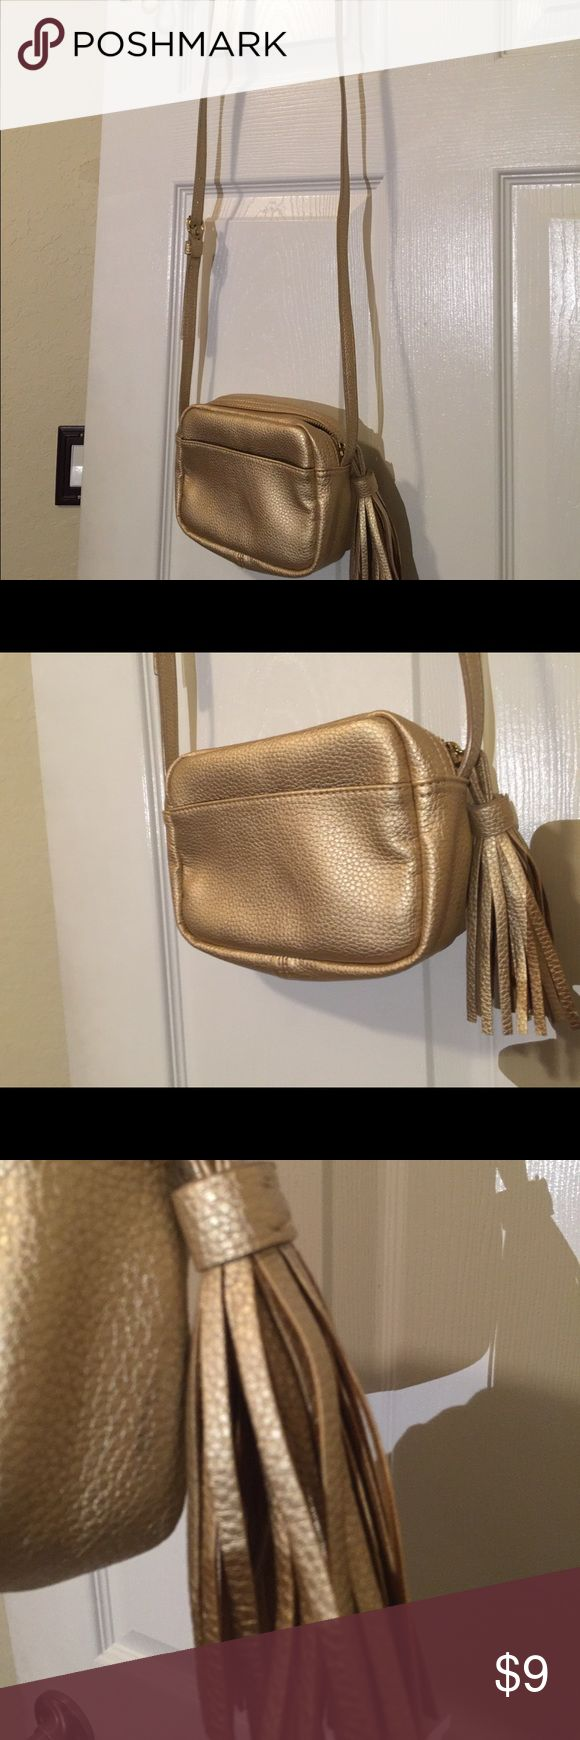 Gold crossbody Gap bag Adorable crossbody Gap bag - never used. Bag is not leather but looks and feels great. Excellent Gap quality. Perfect condition inside and out. GAP Bags Crossbody Bags